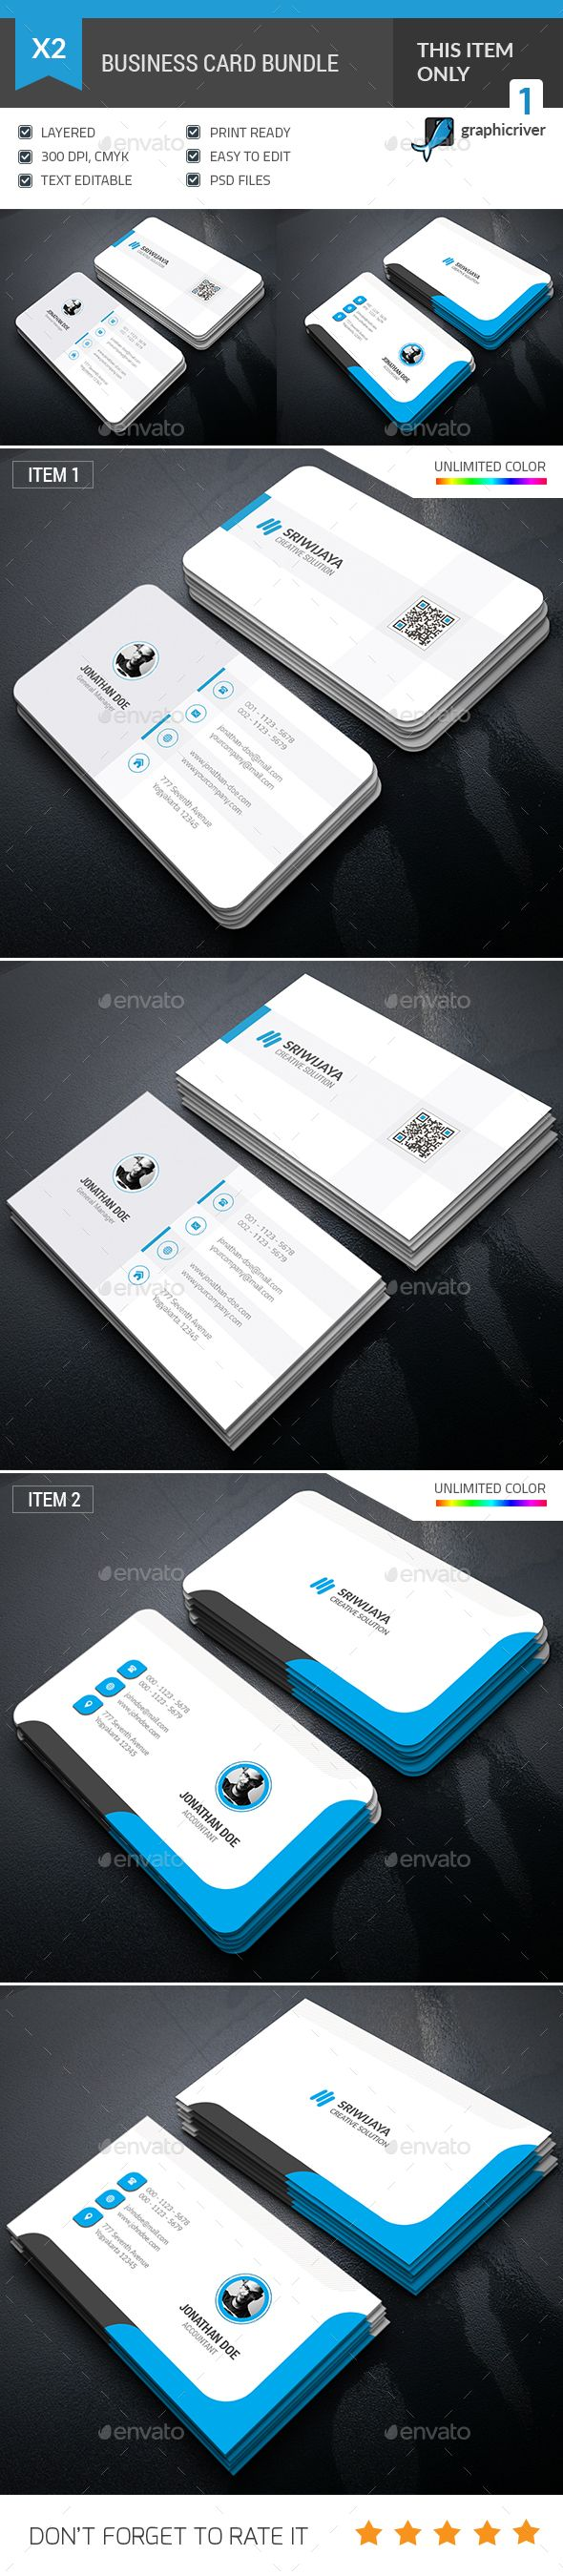 Business Card Bundle   Business cards, Card templates and Business